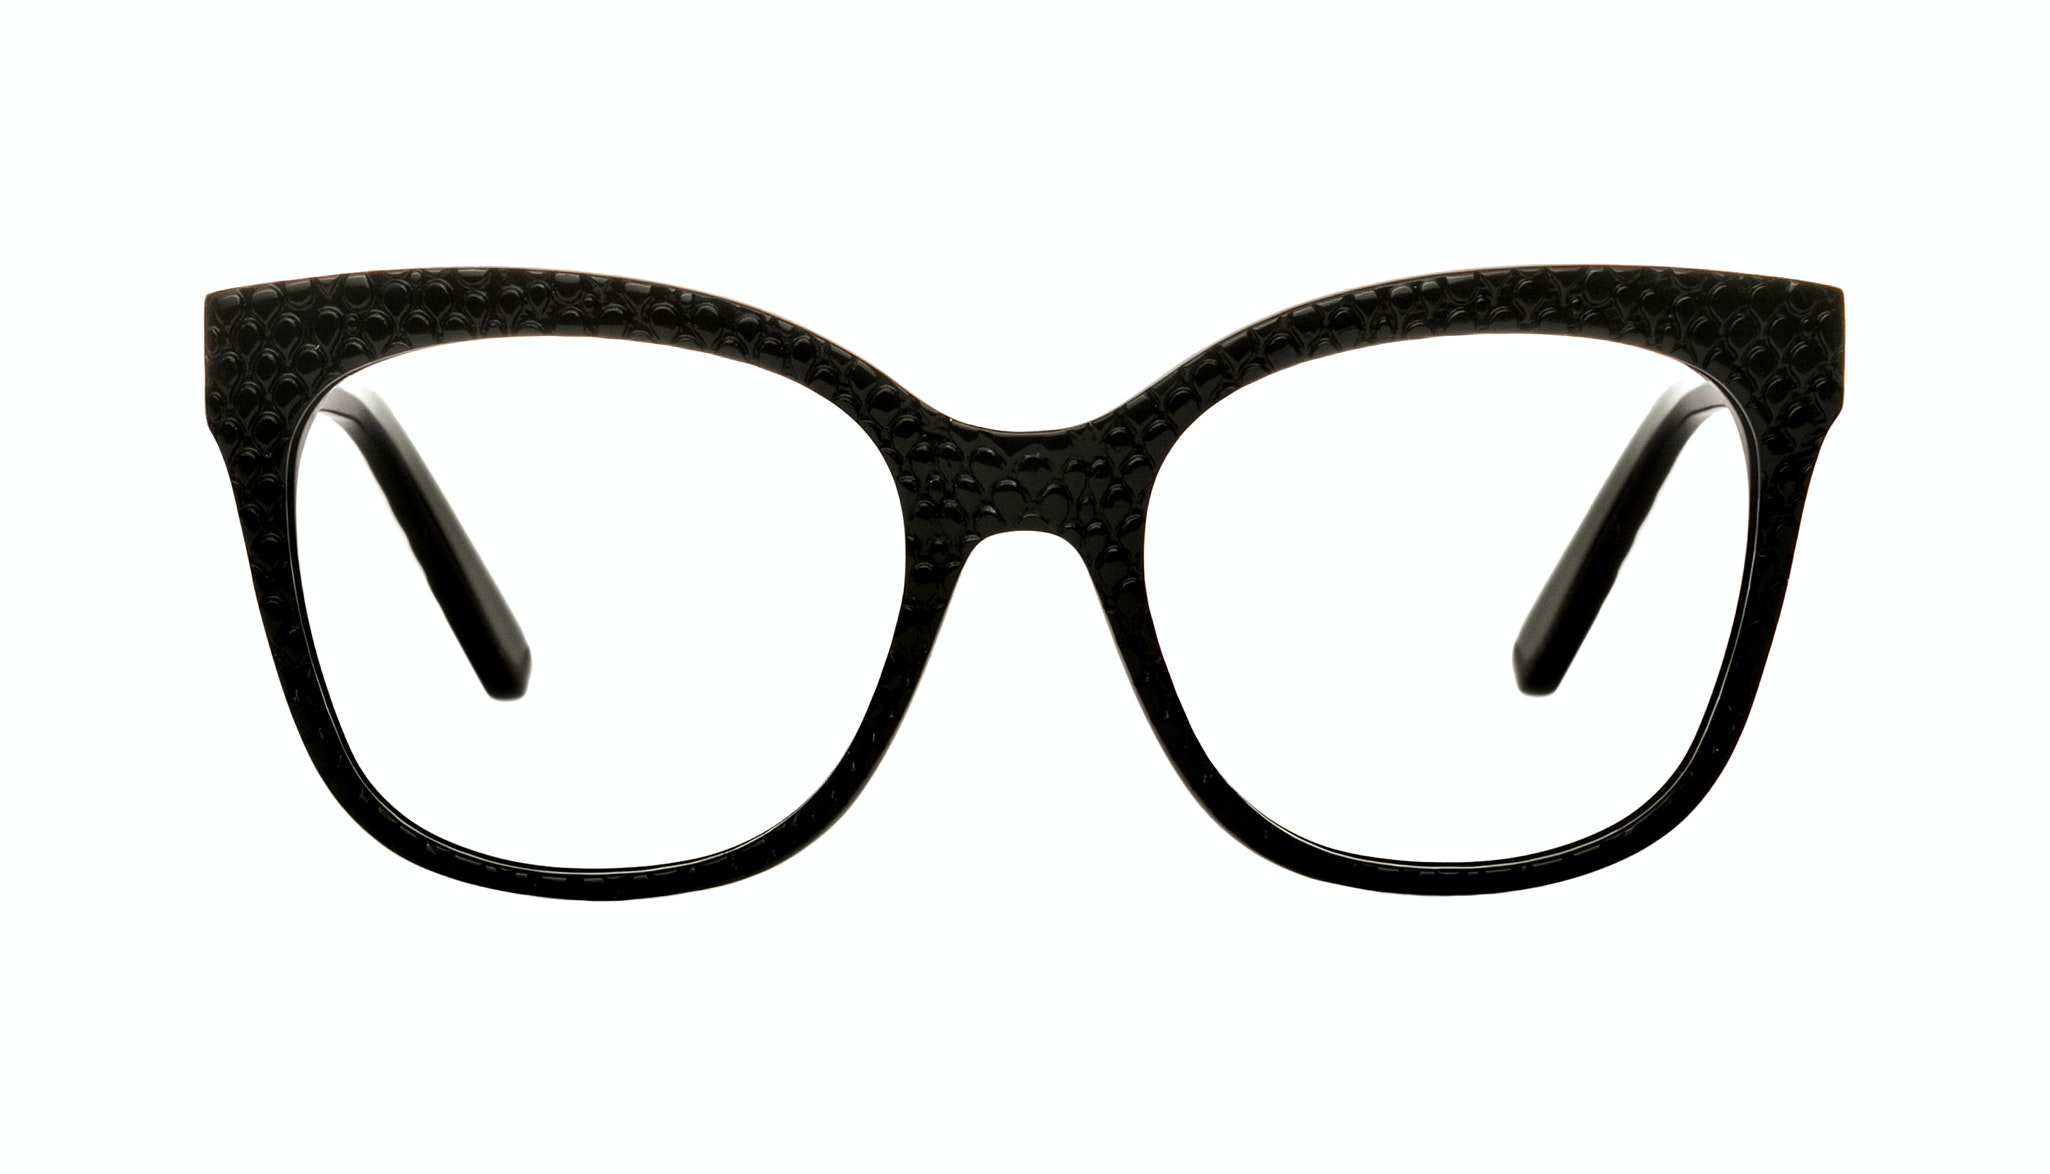 Affordable Fashion Glasses Rectangle Square Eyeglasses Women Breezy Croco Front